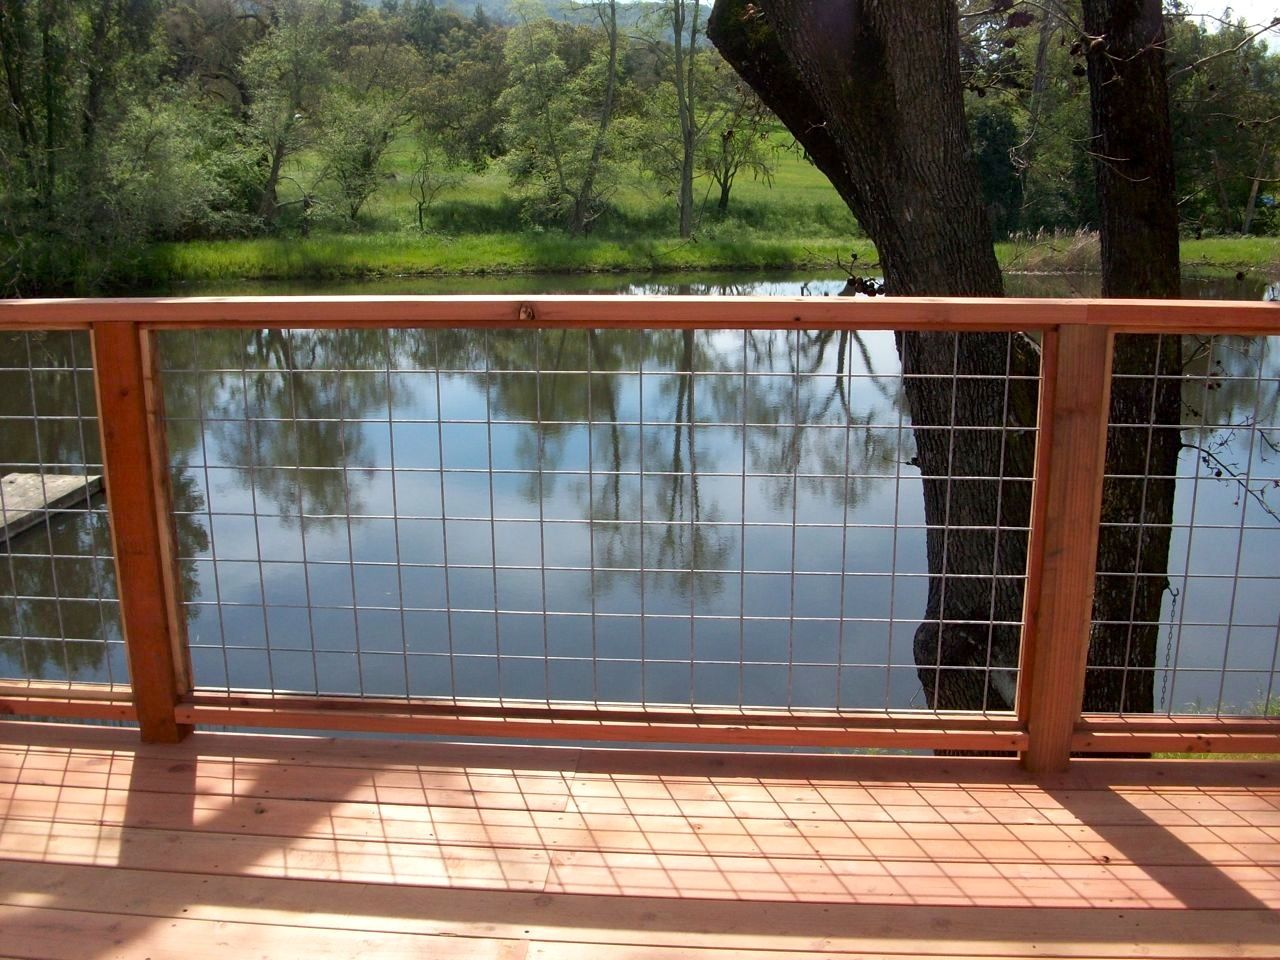 Redwood deck with 4x4 mesh handrail by arbor fence inc decks redwood deck with 4x4 mesh handrail by arbor fence inc baanklon Image collections